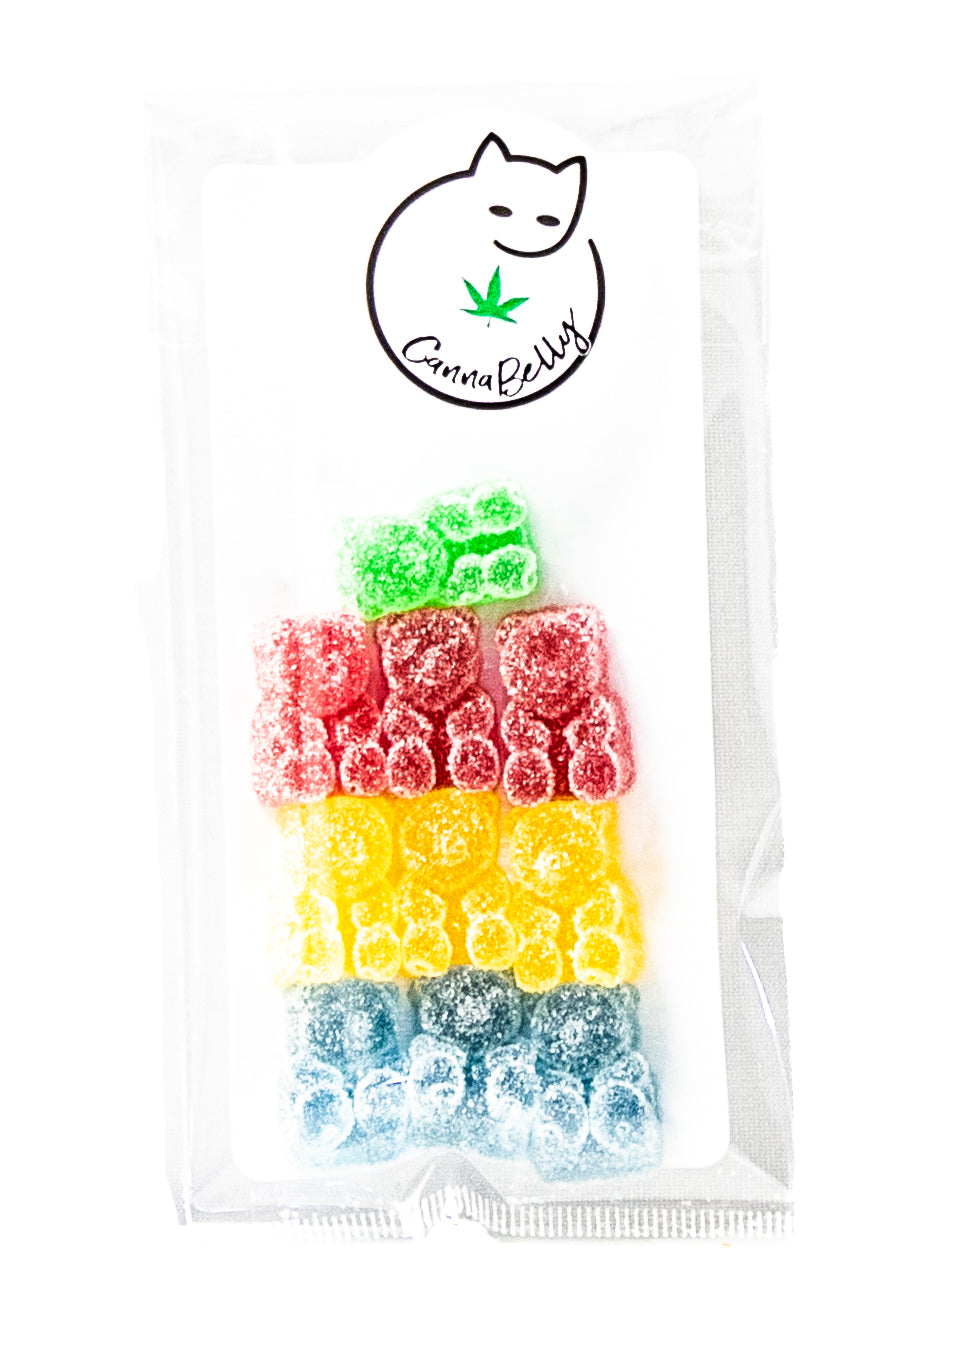 CannaBelly - CBD Isolate Handmade Gummies